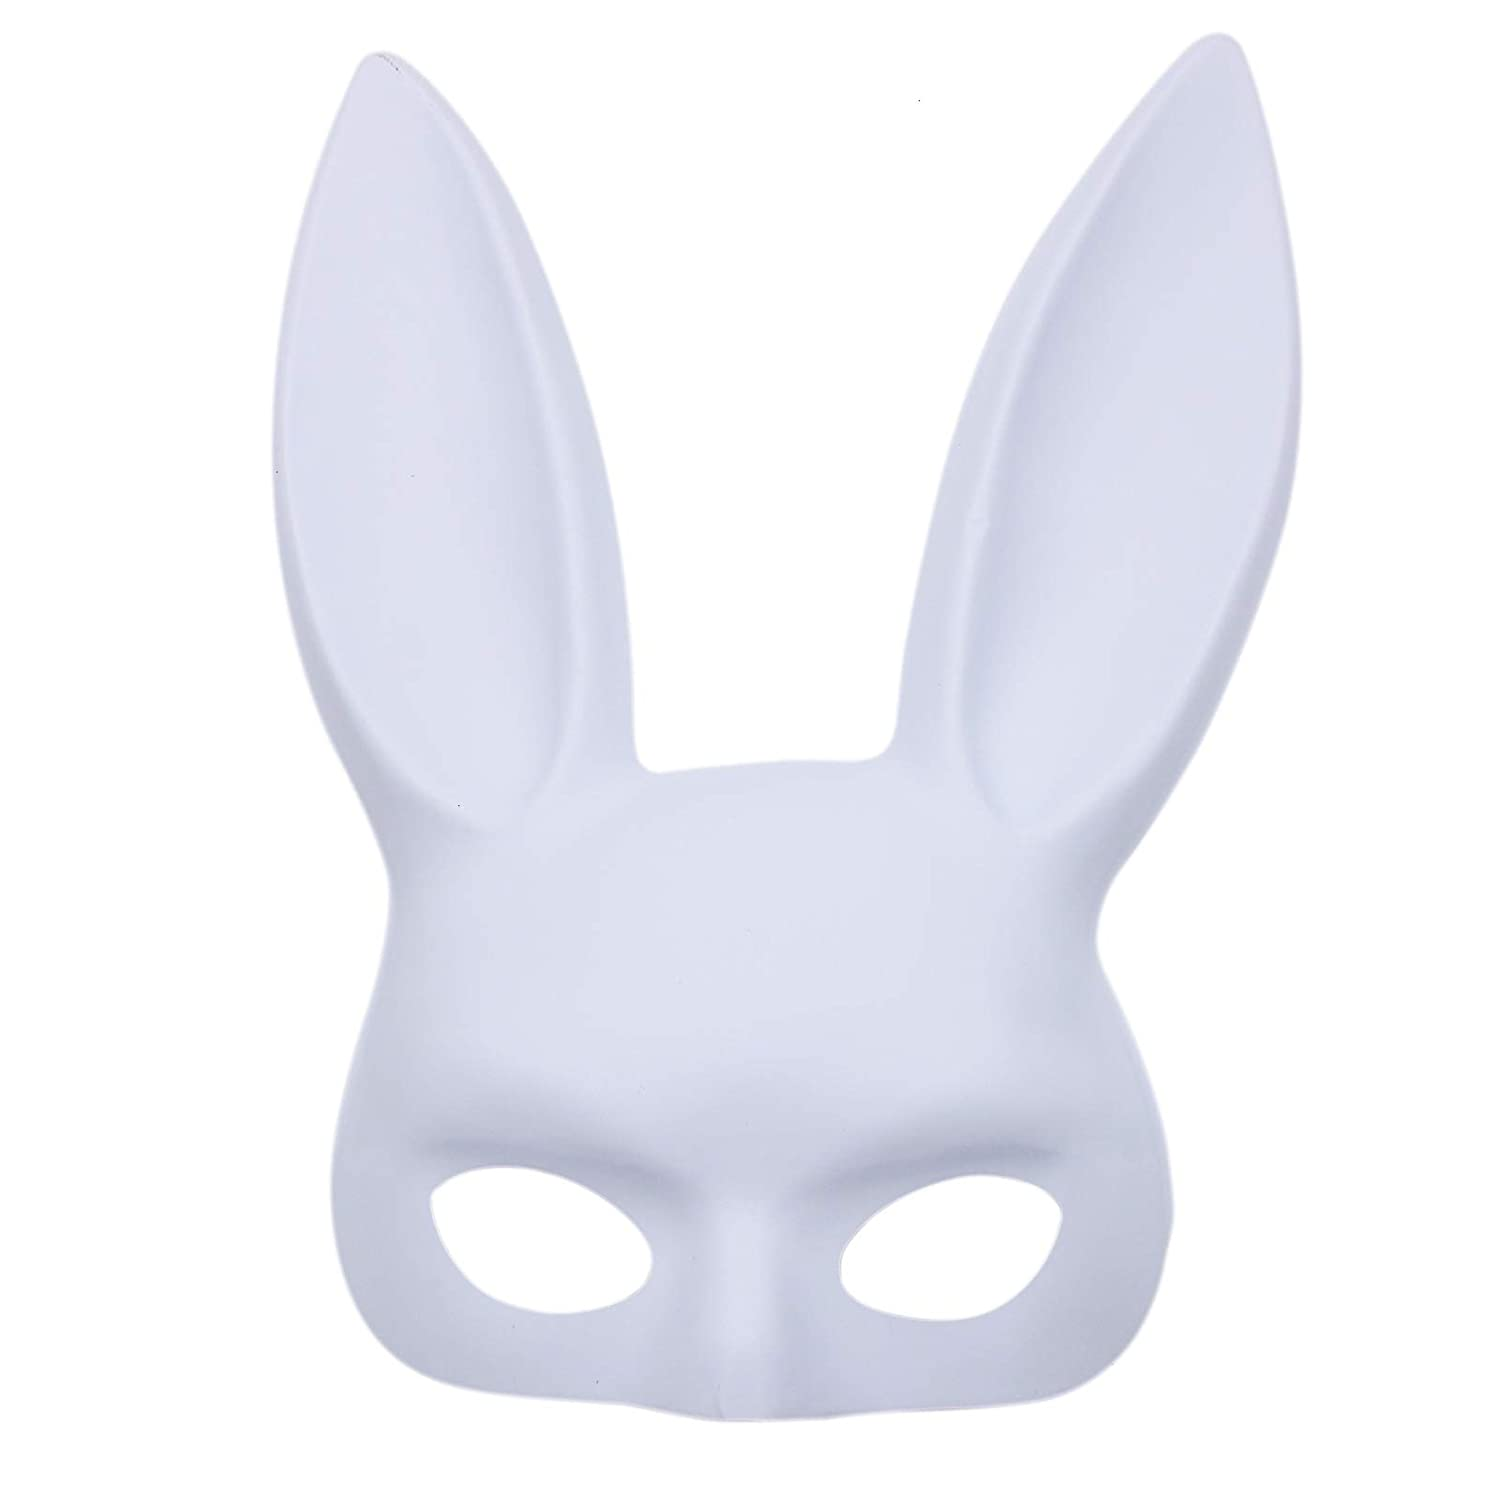 WSSROGY Rabbit Mask Bunny Mask Masquerade Mask for Carnival Halloween Costume Accessory Party Favors White